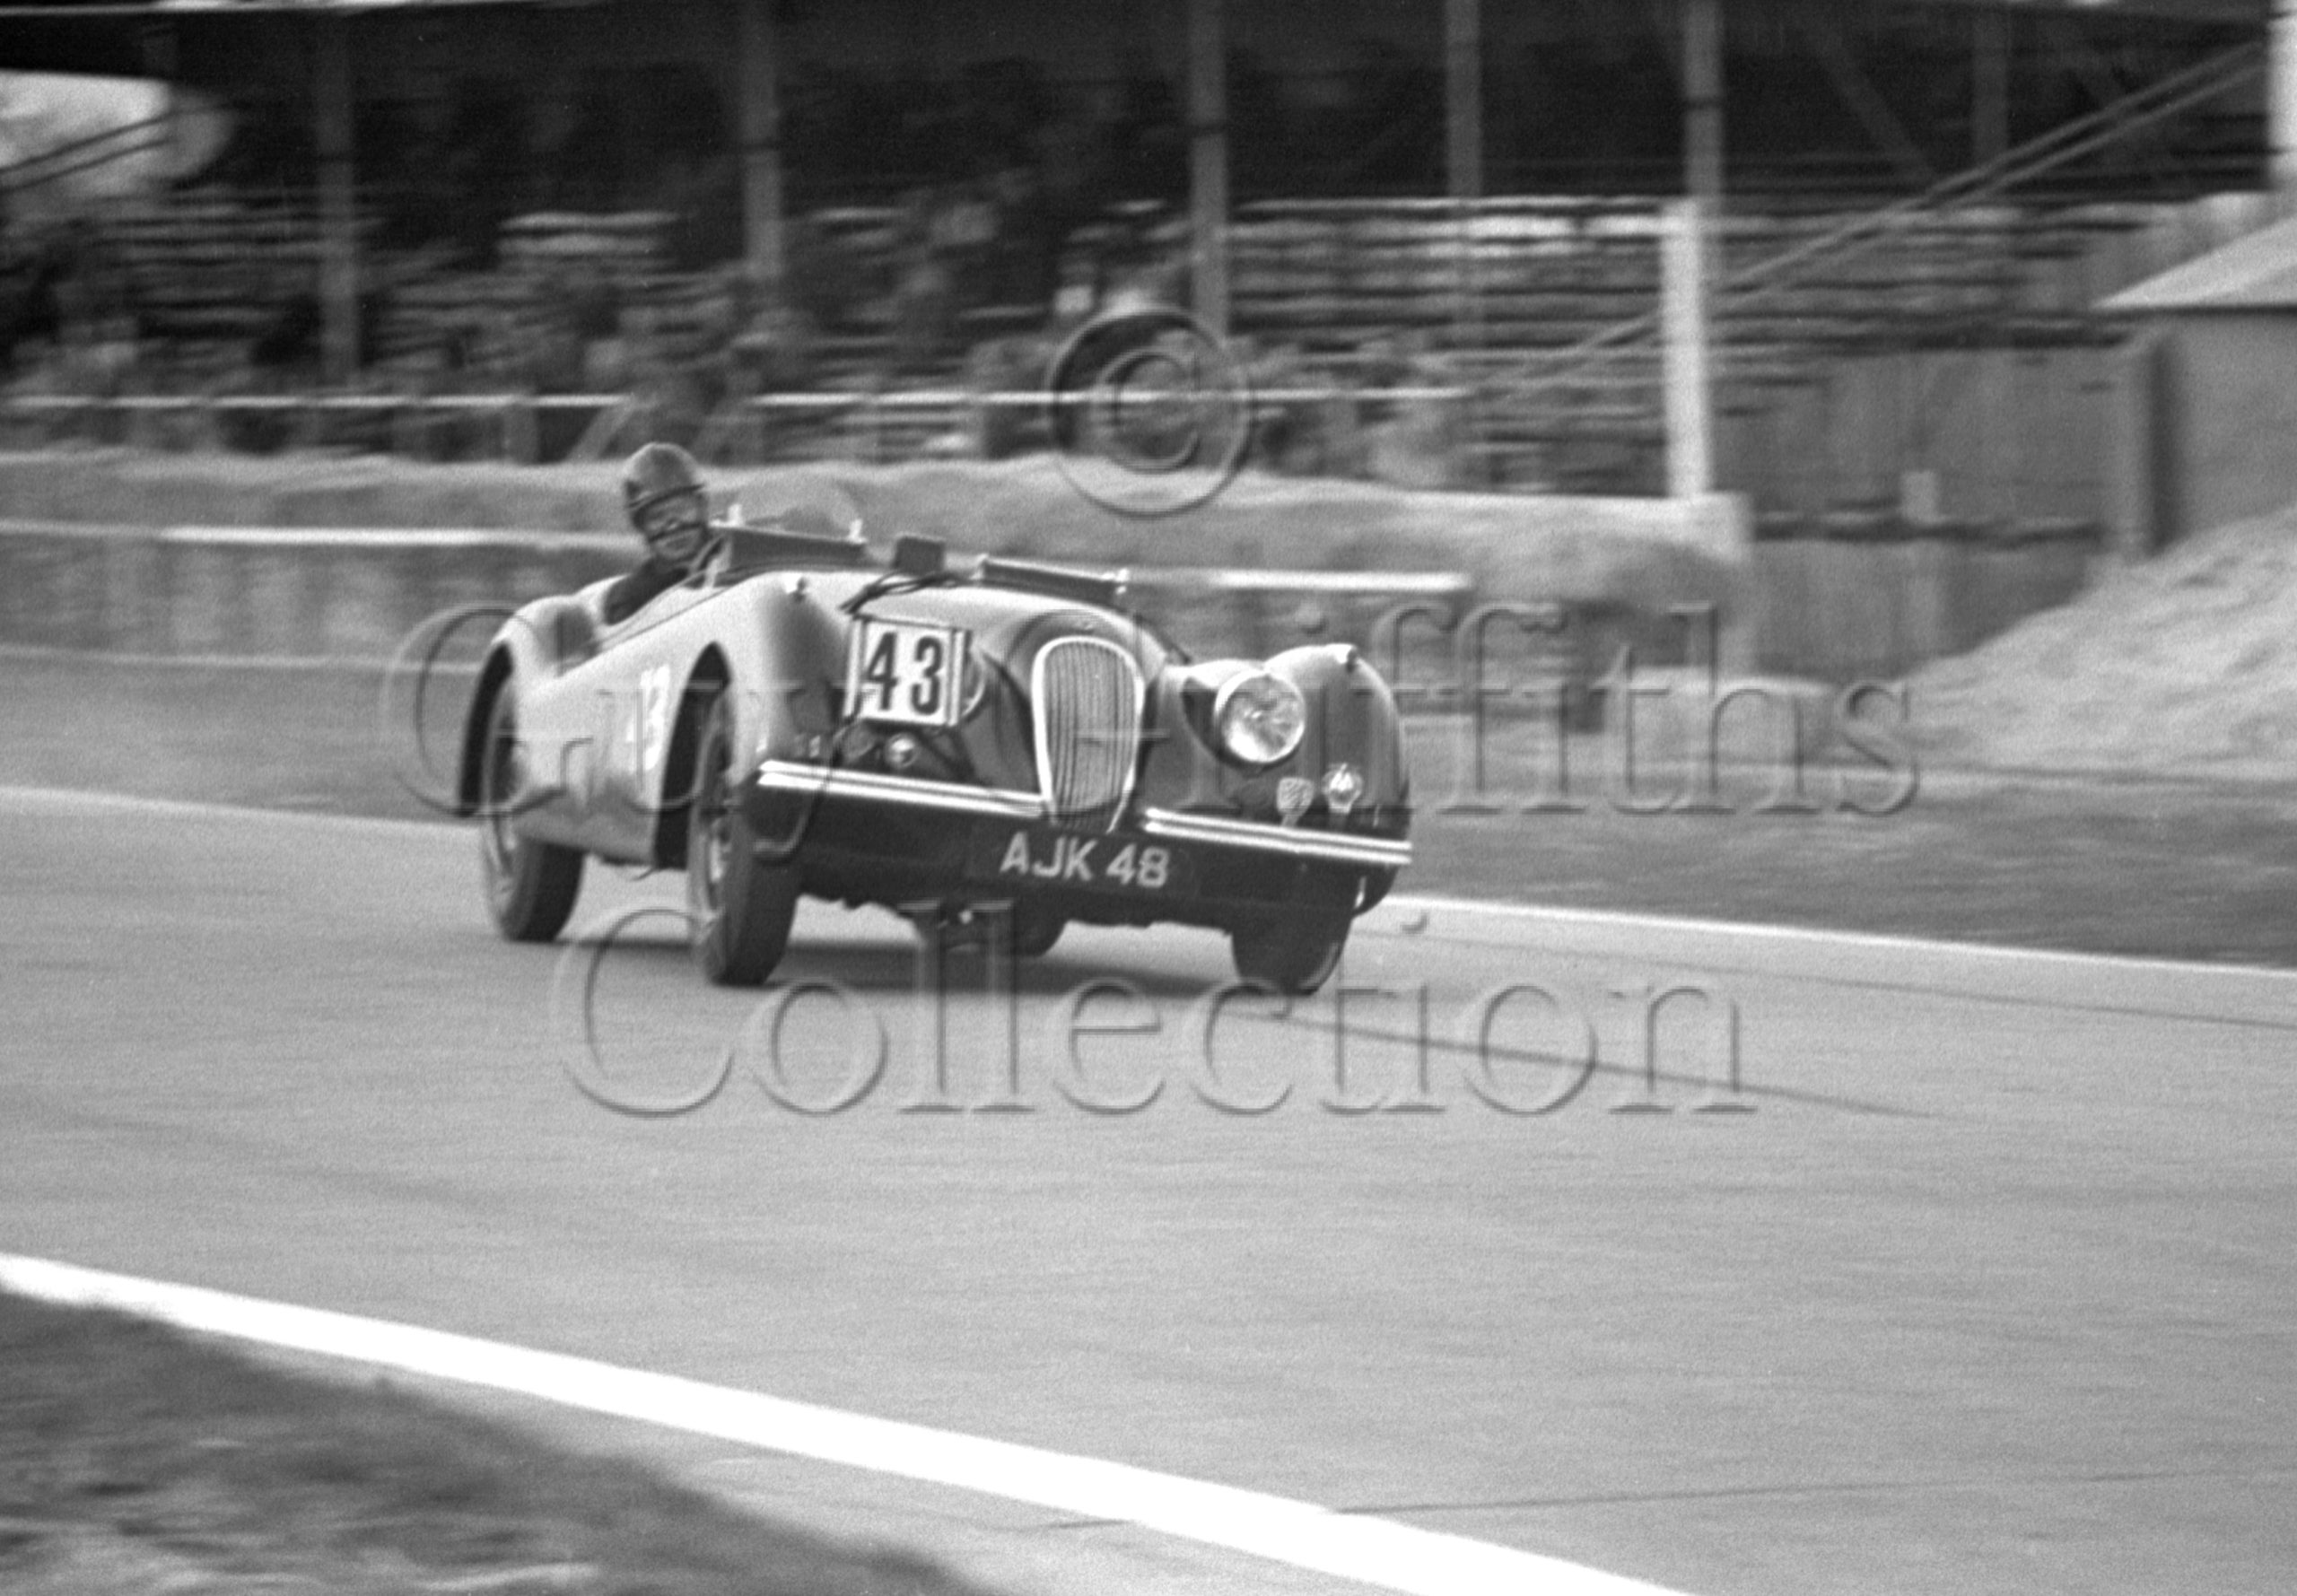 65-574–M-Levy–Jaguar-XK-120-AJK-48–Goodwood–21-03-1953.jpg - Guy Griffiths Collection